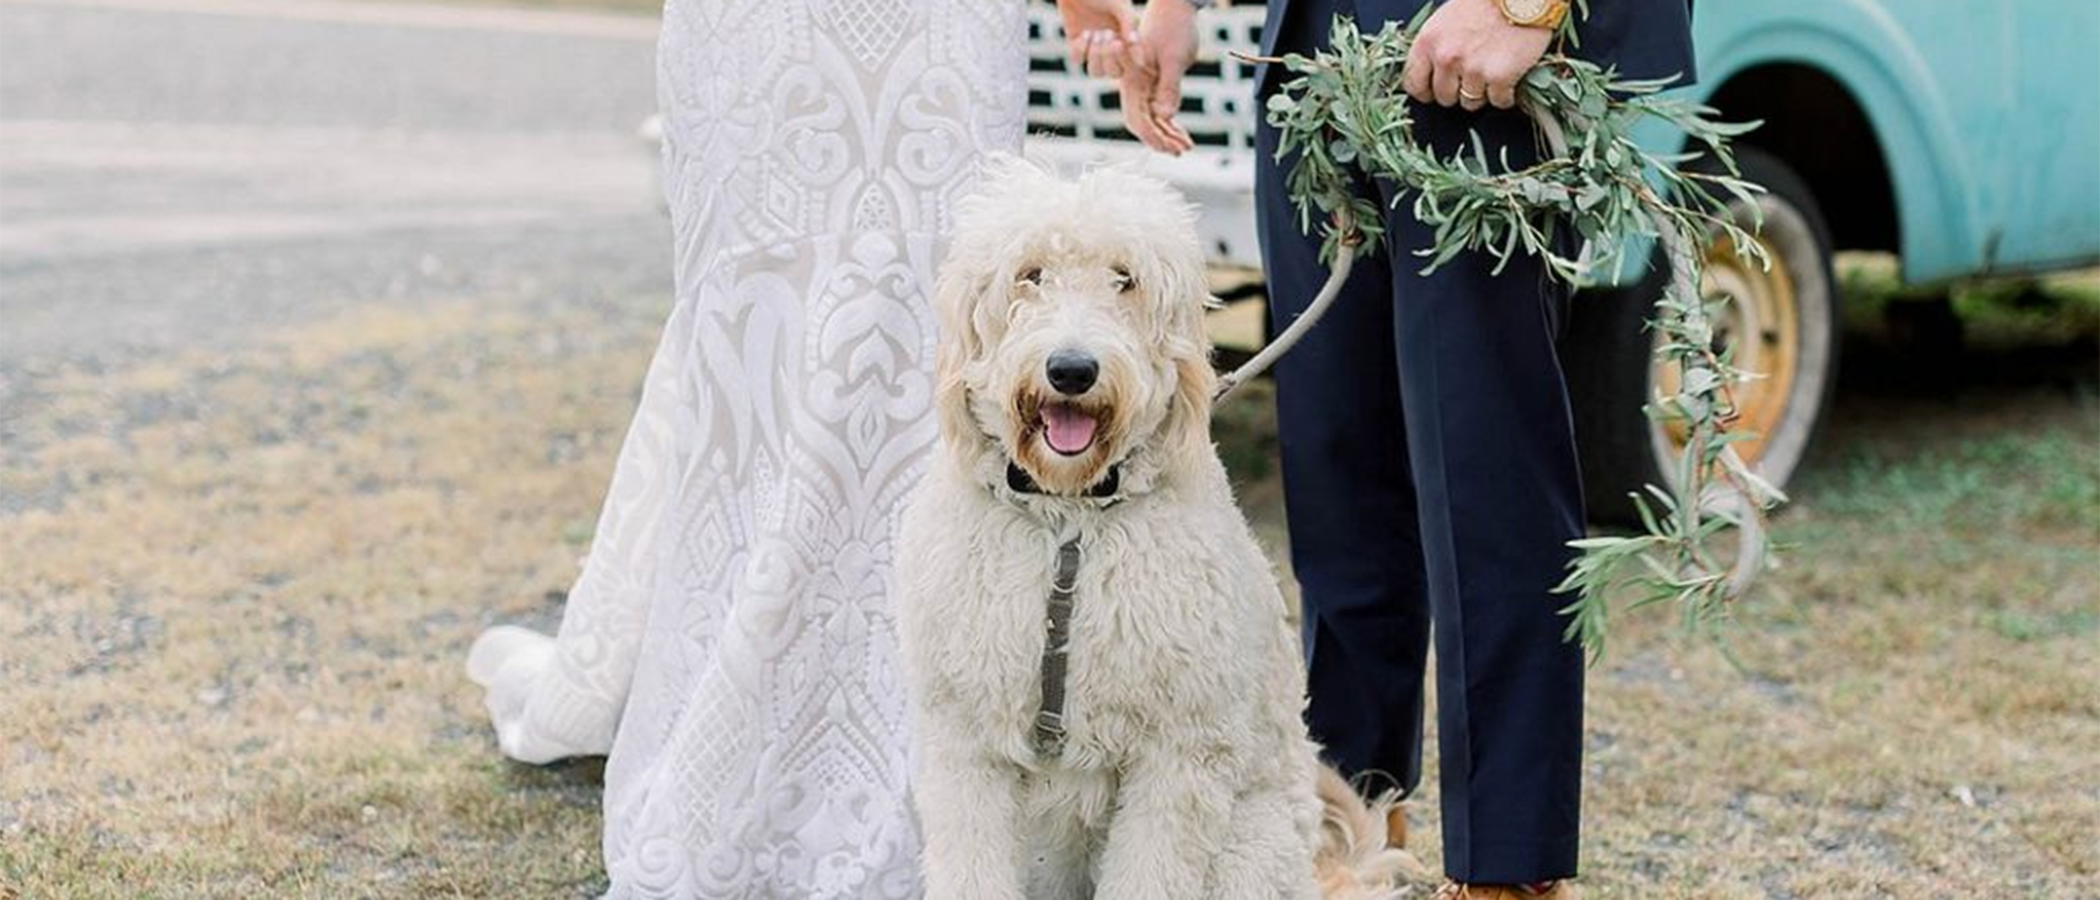 Everly at Railroad Vintage Fall Wedding